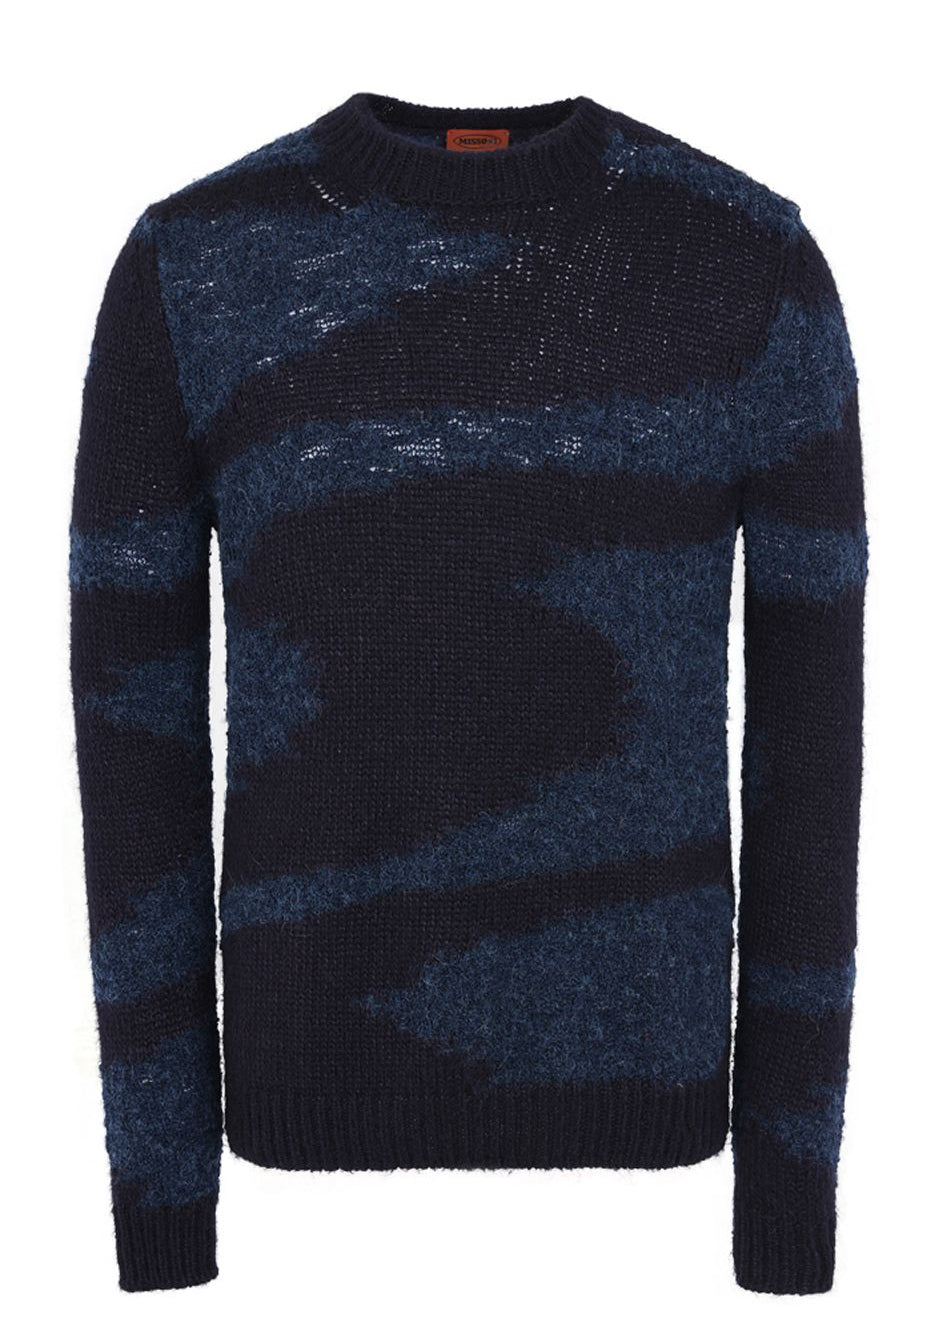 Navy Marble Crewneck Sweater